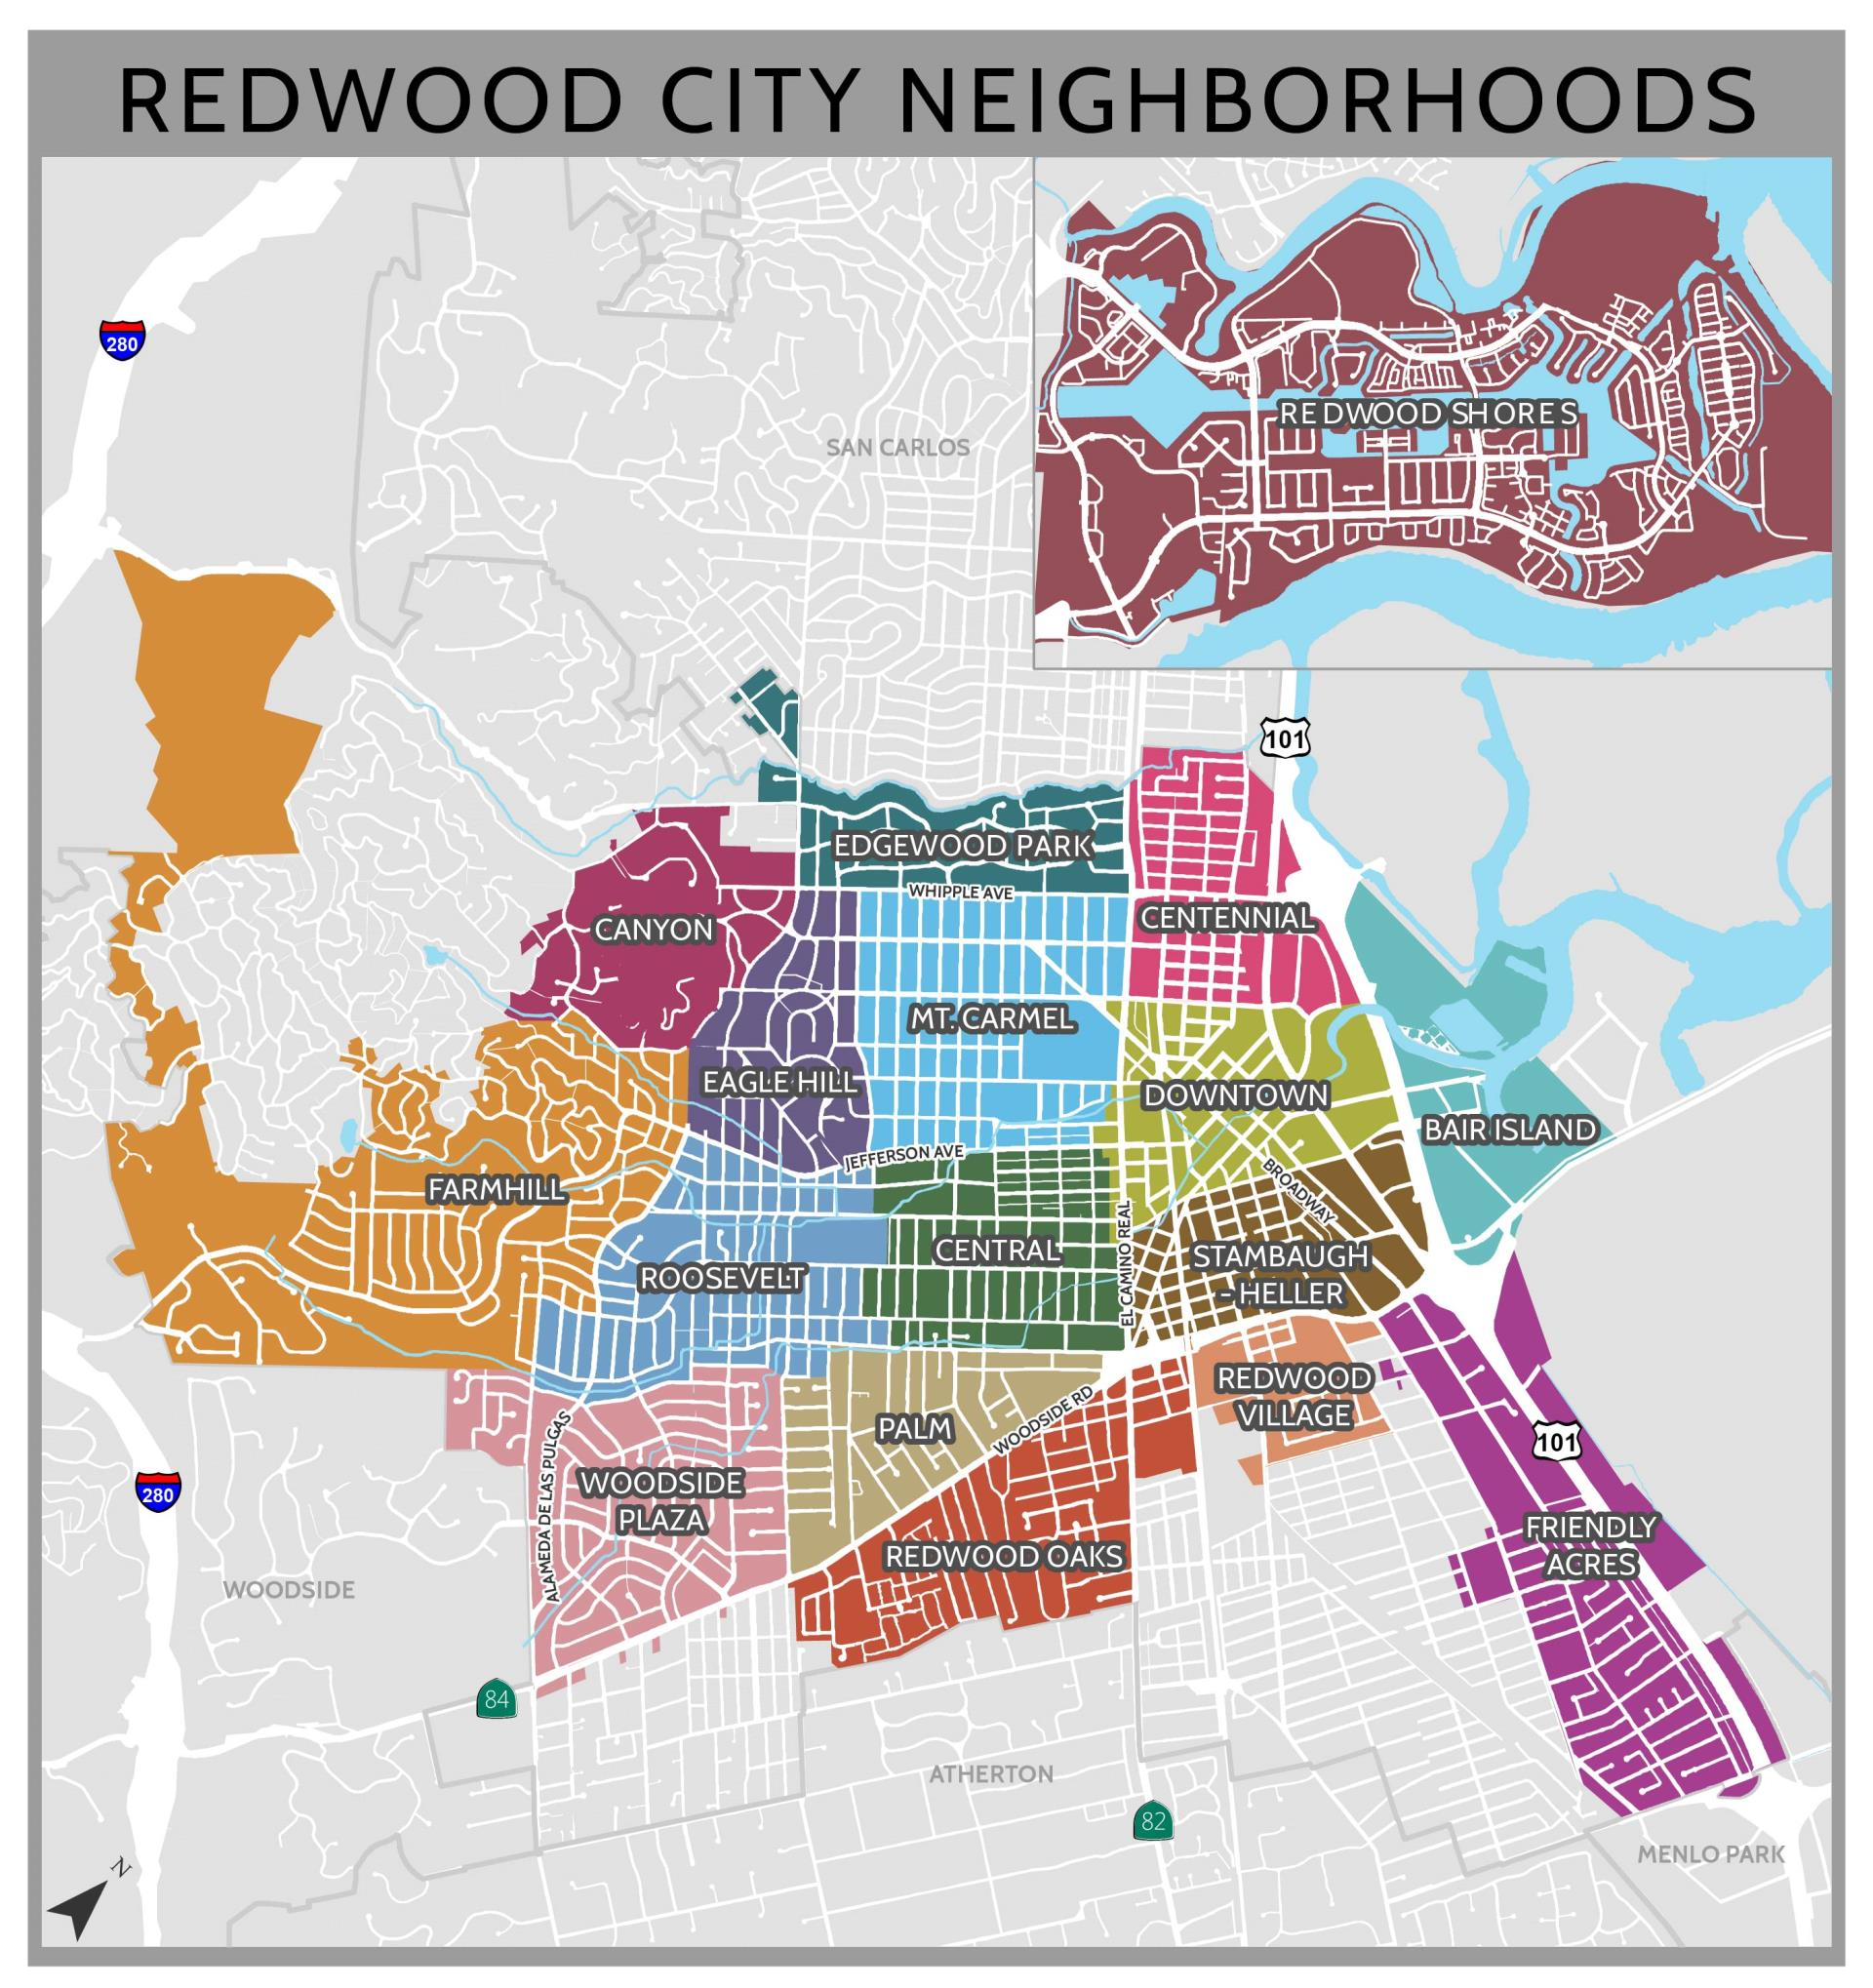 RWC_Neighborhoods-01